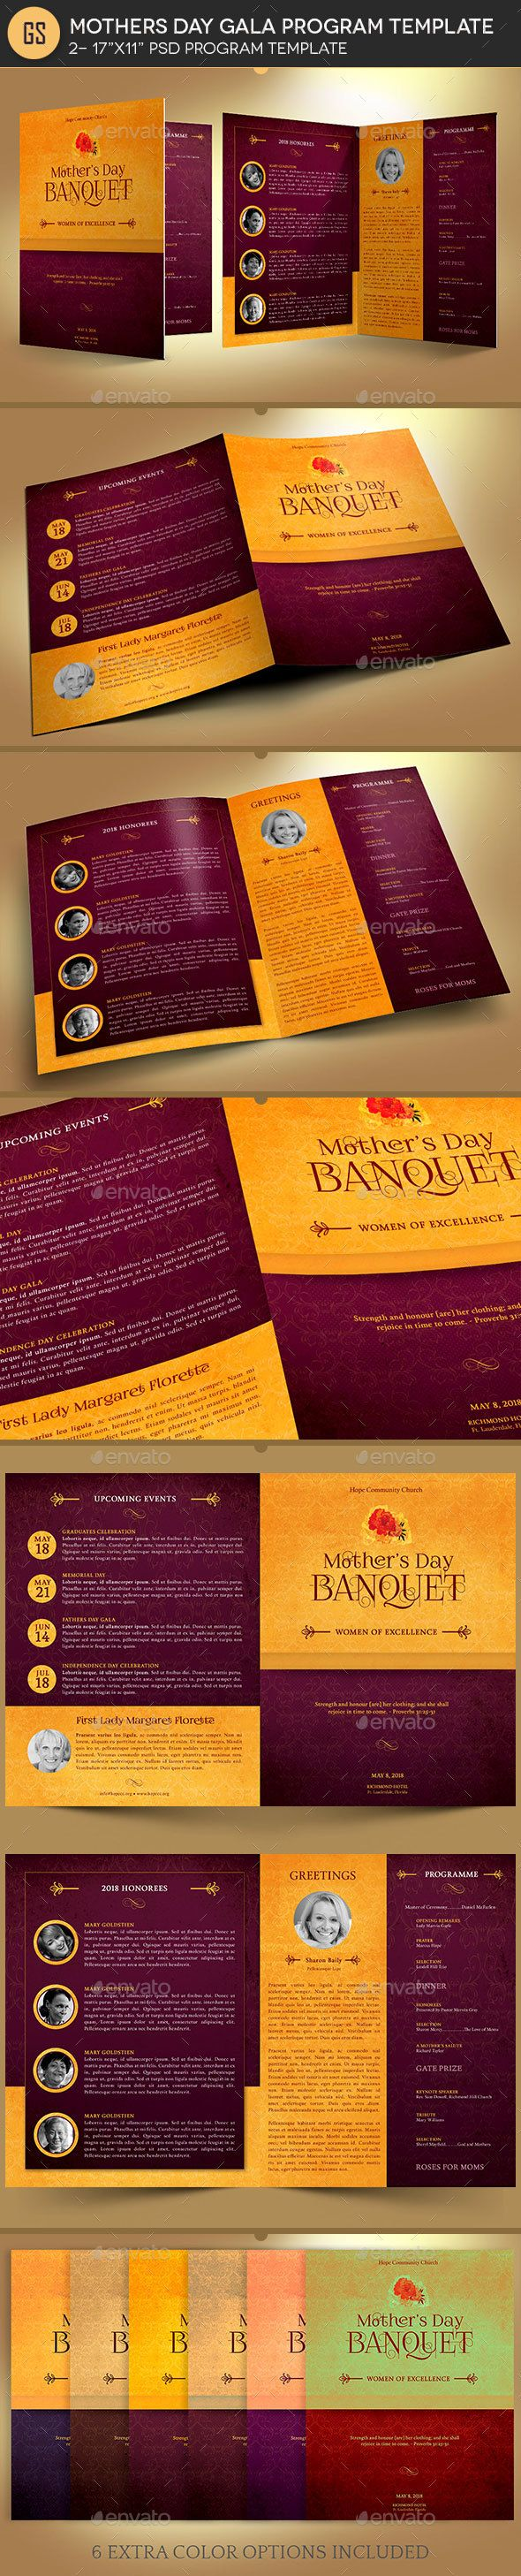 mothers day gala program template informational brochures